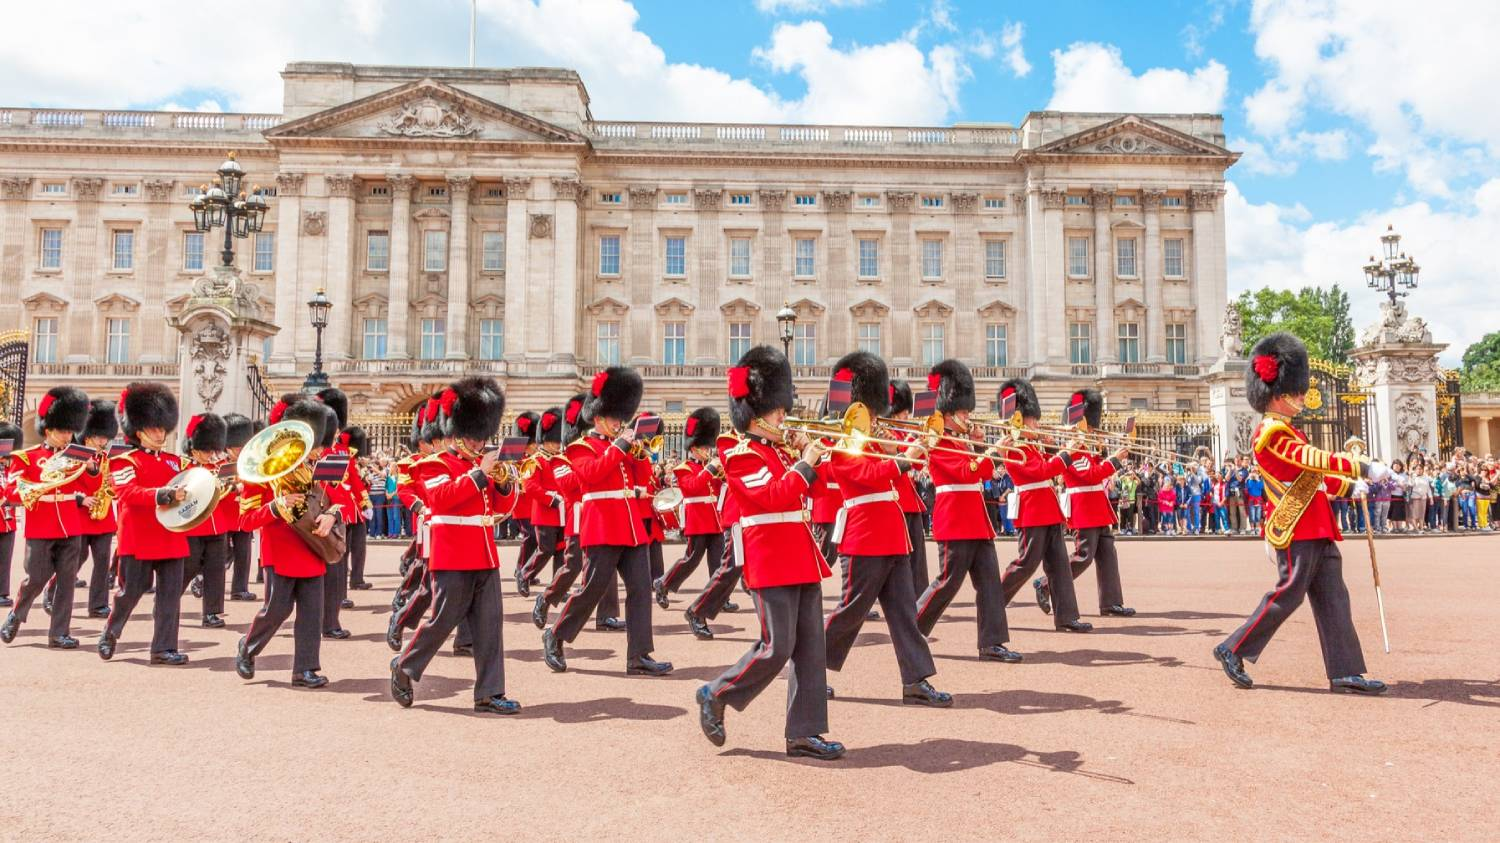 Changing of the Guard - Things To Do In London